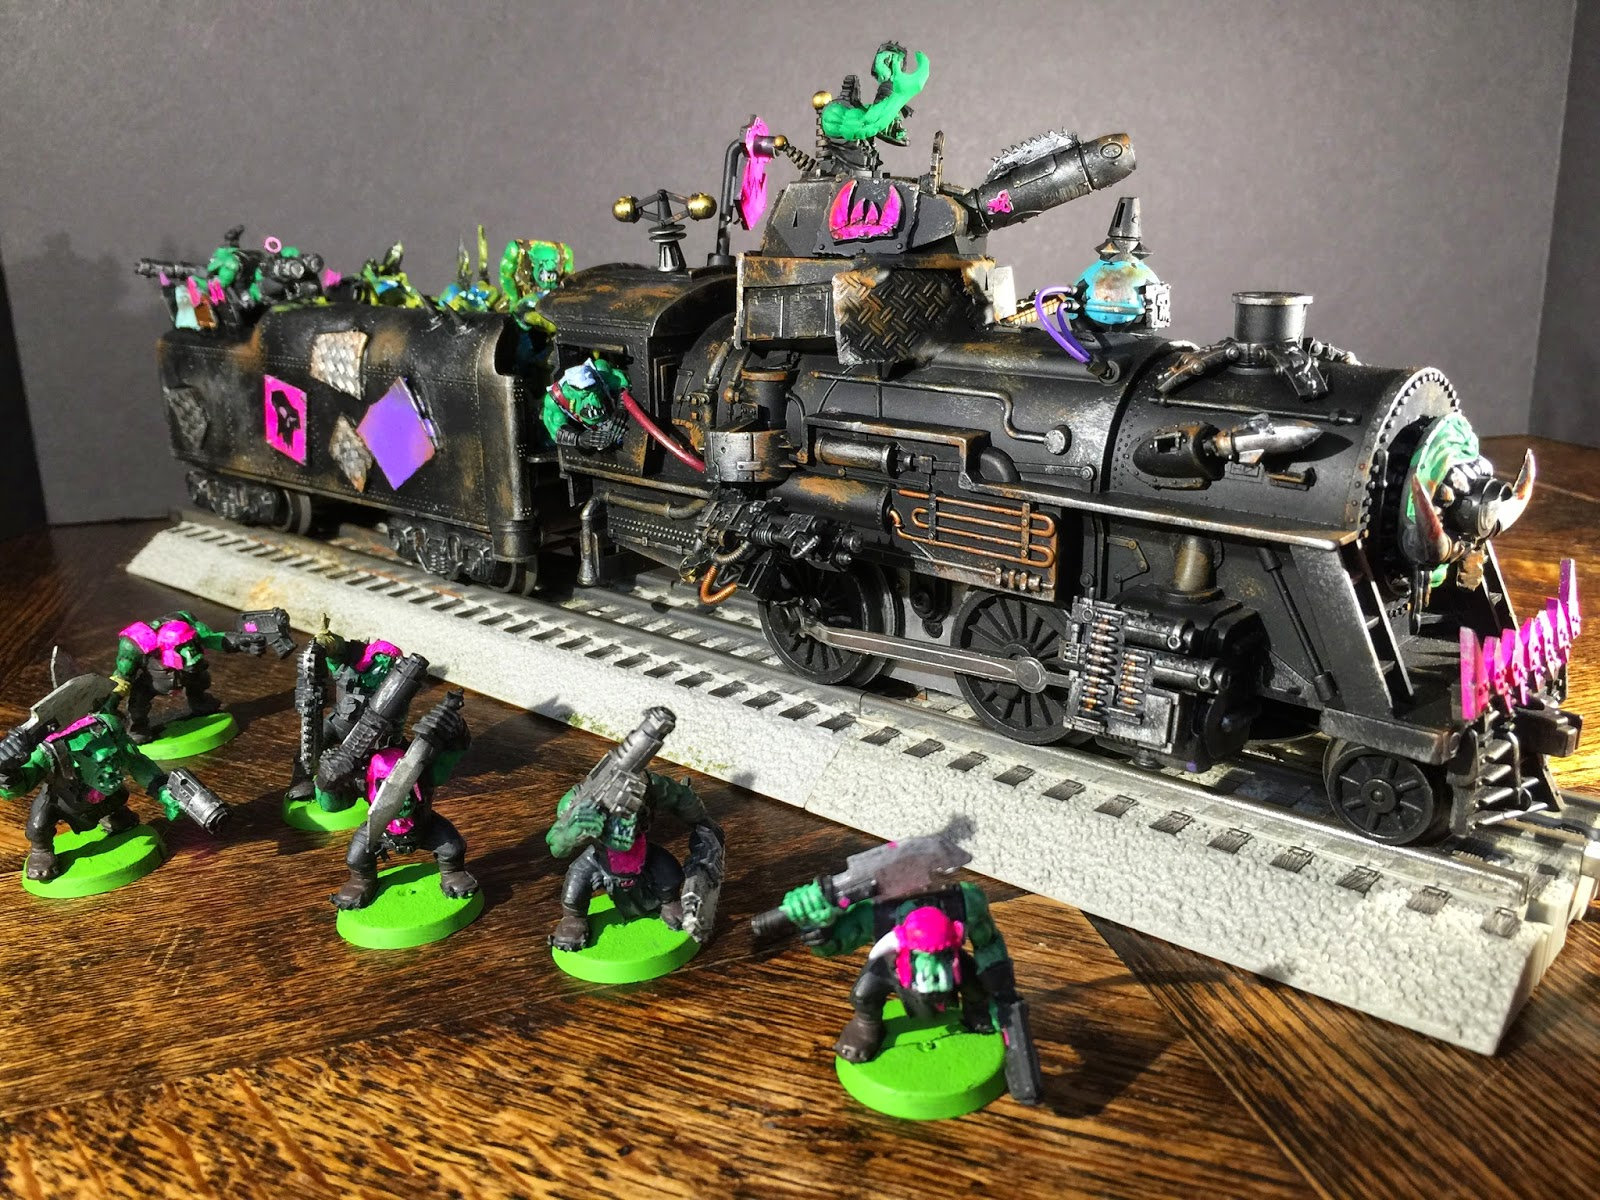 Ork Steam Train, Apocalypse Battle, Pink Orks, Battle Gaming One